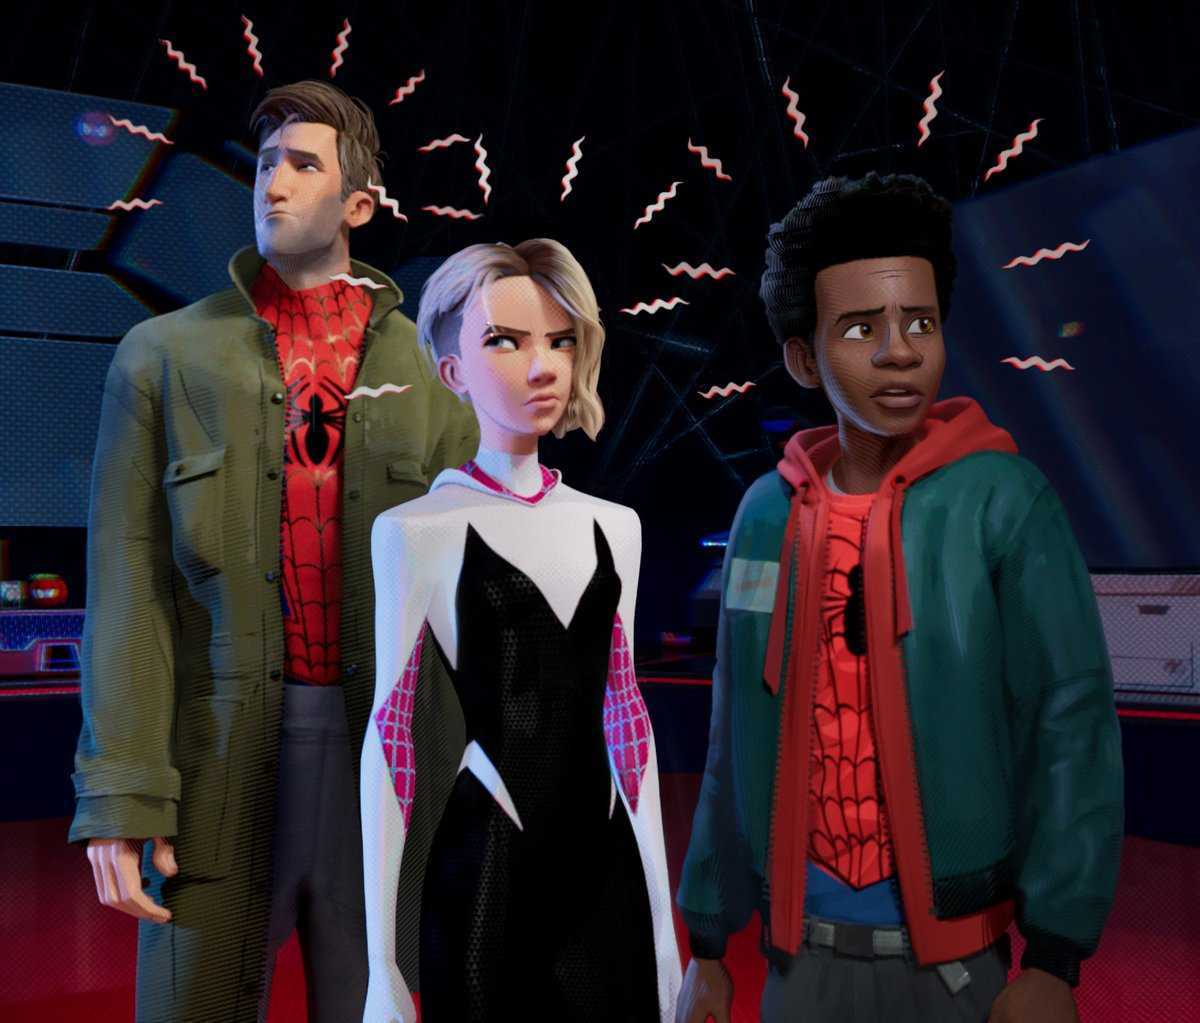 "spider-man in the spider verse new photo ""title ="" spider-man in the spider verse new photo ""height ="" 558 ""width ="" 655 ""data-item ="" 1[ads1]124168 ""/>    <figcaption> (Photo : Sony Pictures) </figcaption></figure> <p>  The photo shows the three ""Spider-People"" with their spider-senses tingling. </p> <p>  The comic-con audience also saw a roll of new footage from the animated film, in which Miles (Shameik Moore) Peter (Jake Johnson) meets Peter's grave and learns that Peter really comes from another universe and asks Miles Peter to help him learn how to be Spider-Man Gwen Stacy (Hailee Steinfeld) also appears from another dimension Saves Peter and Miles of Kingpin (Liev Schreiber). Another fast-paced scene was The Lizard's Attack of the Heroes. </p><div><script async src="